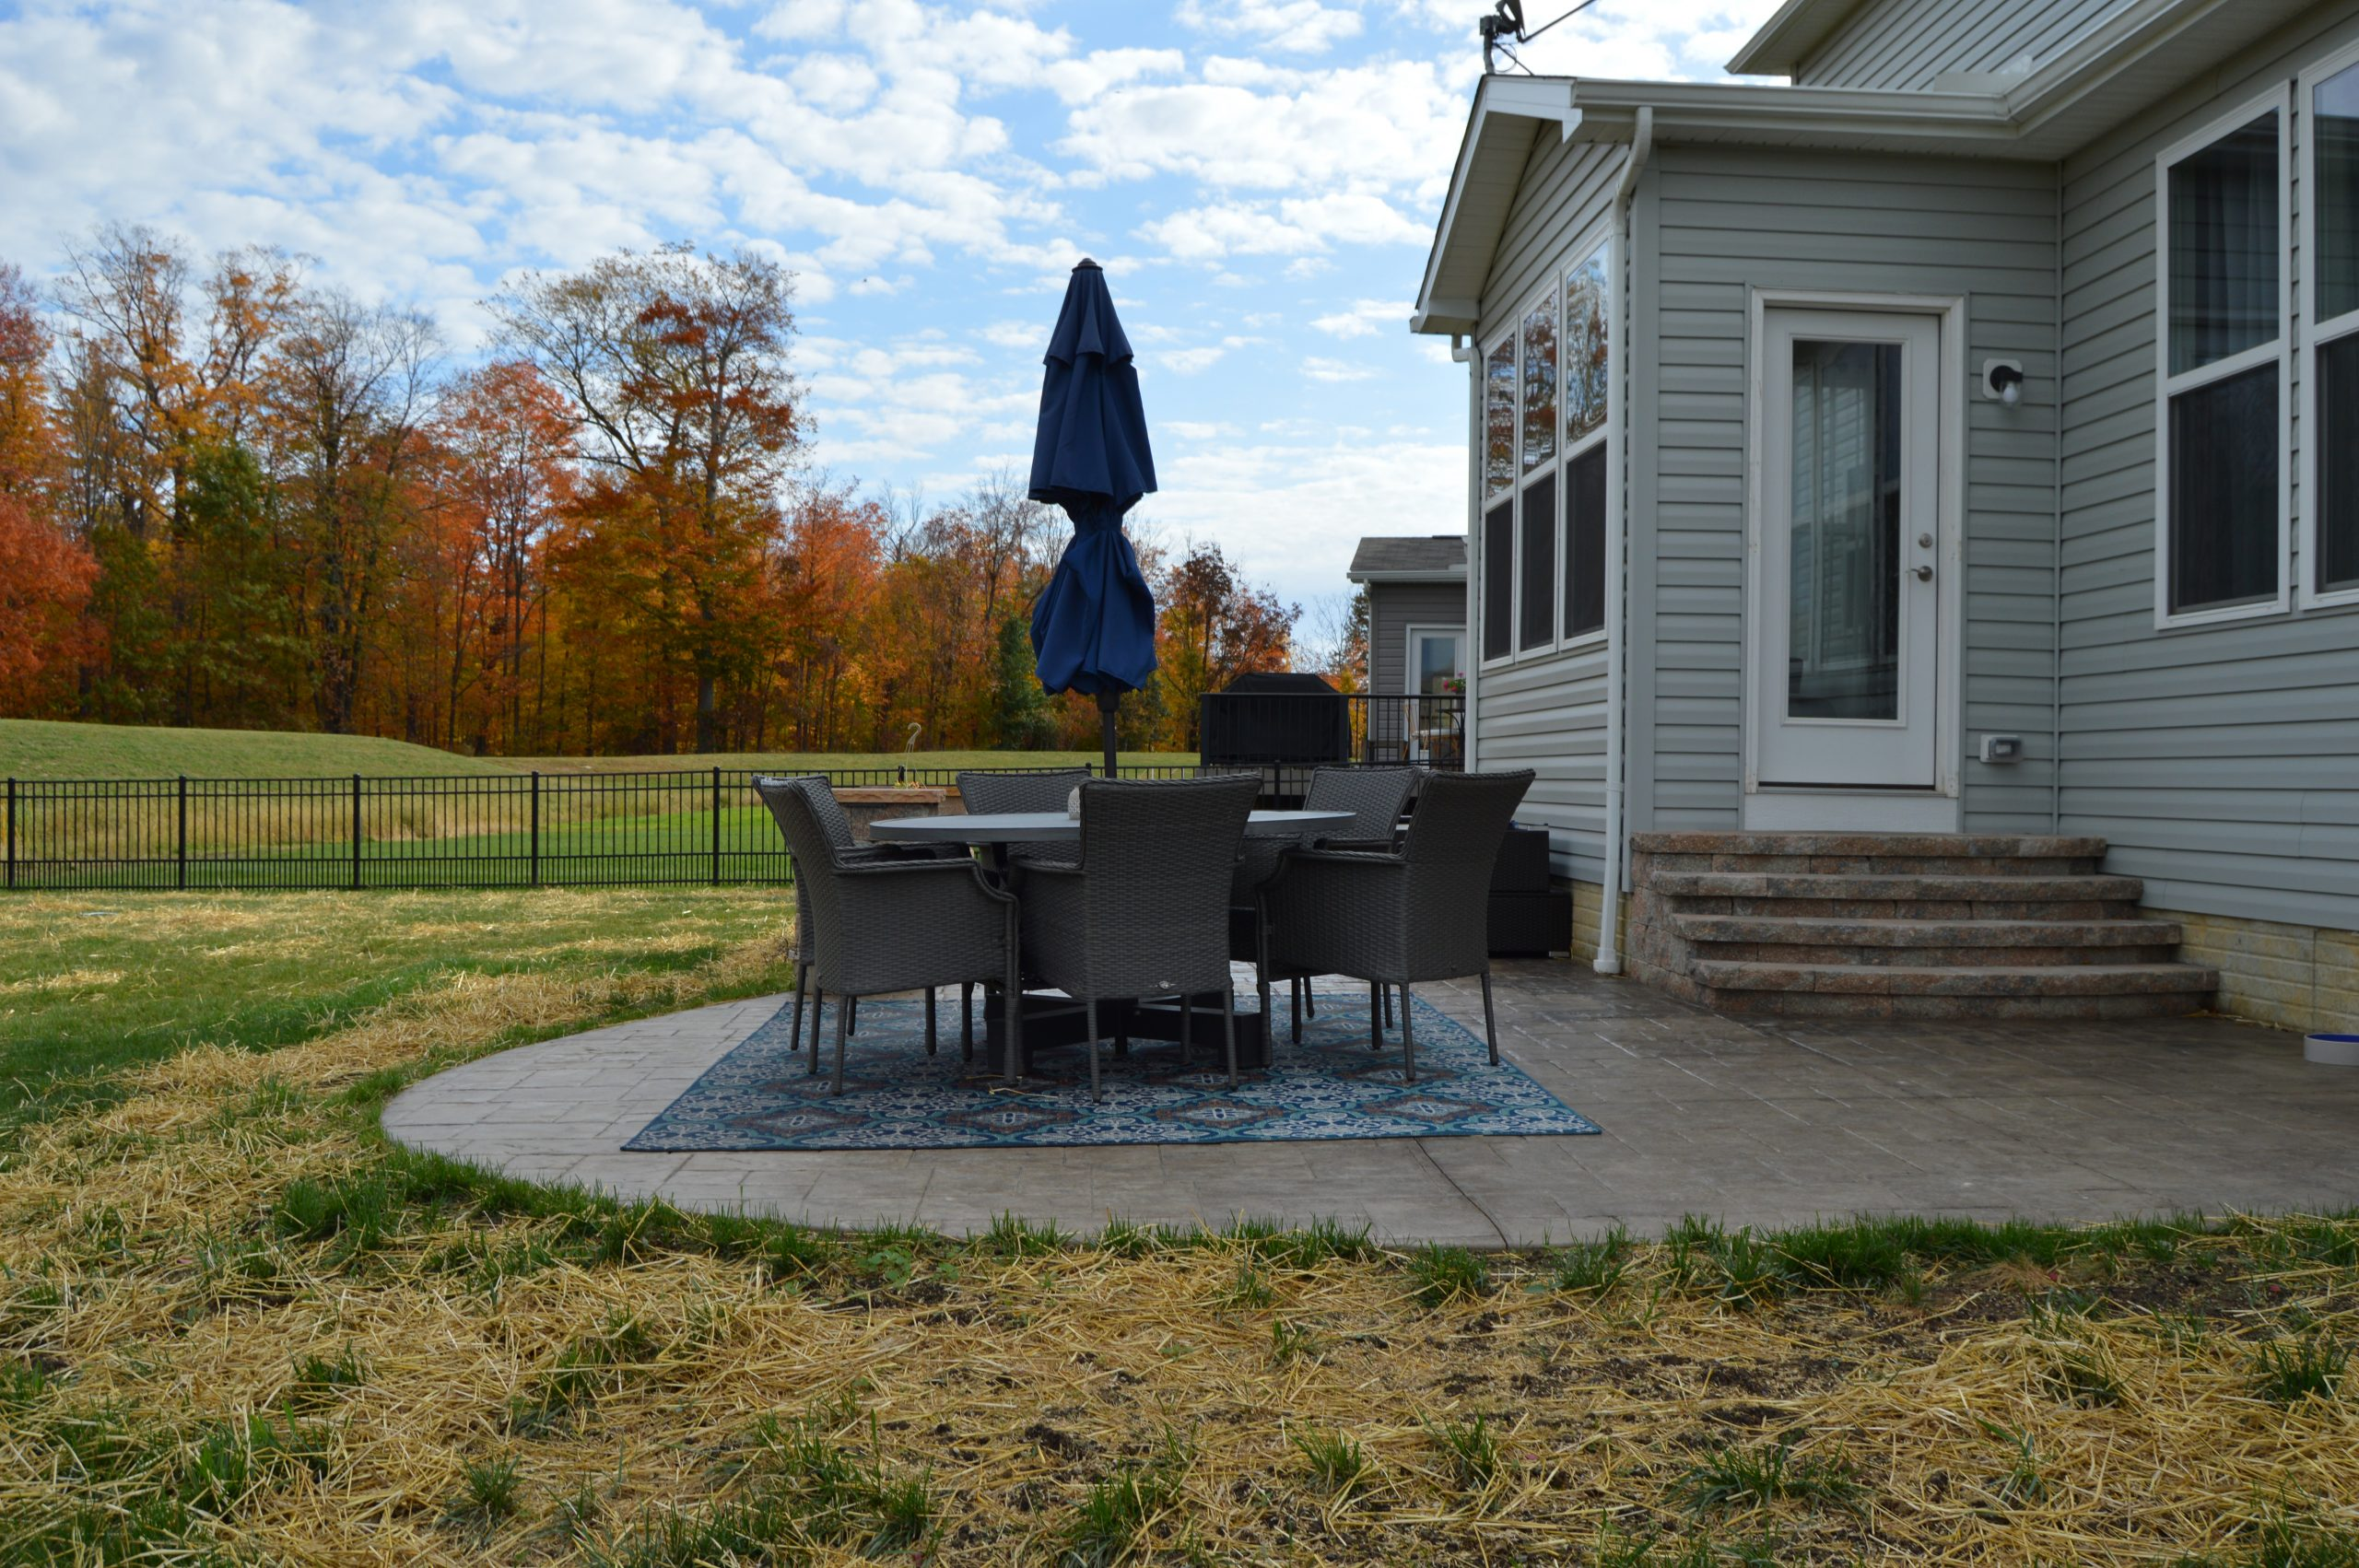 Looking for patio contractors? - Allscapes Ohio - Residential & Commercial Landscaping and Hardscaping and Lawn Care Services